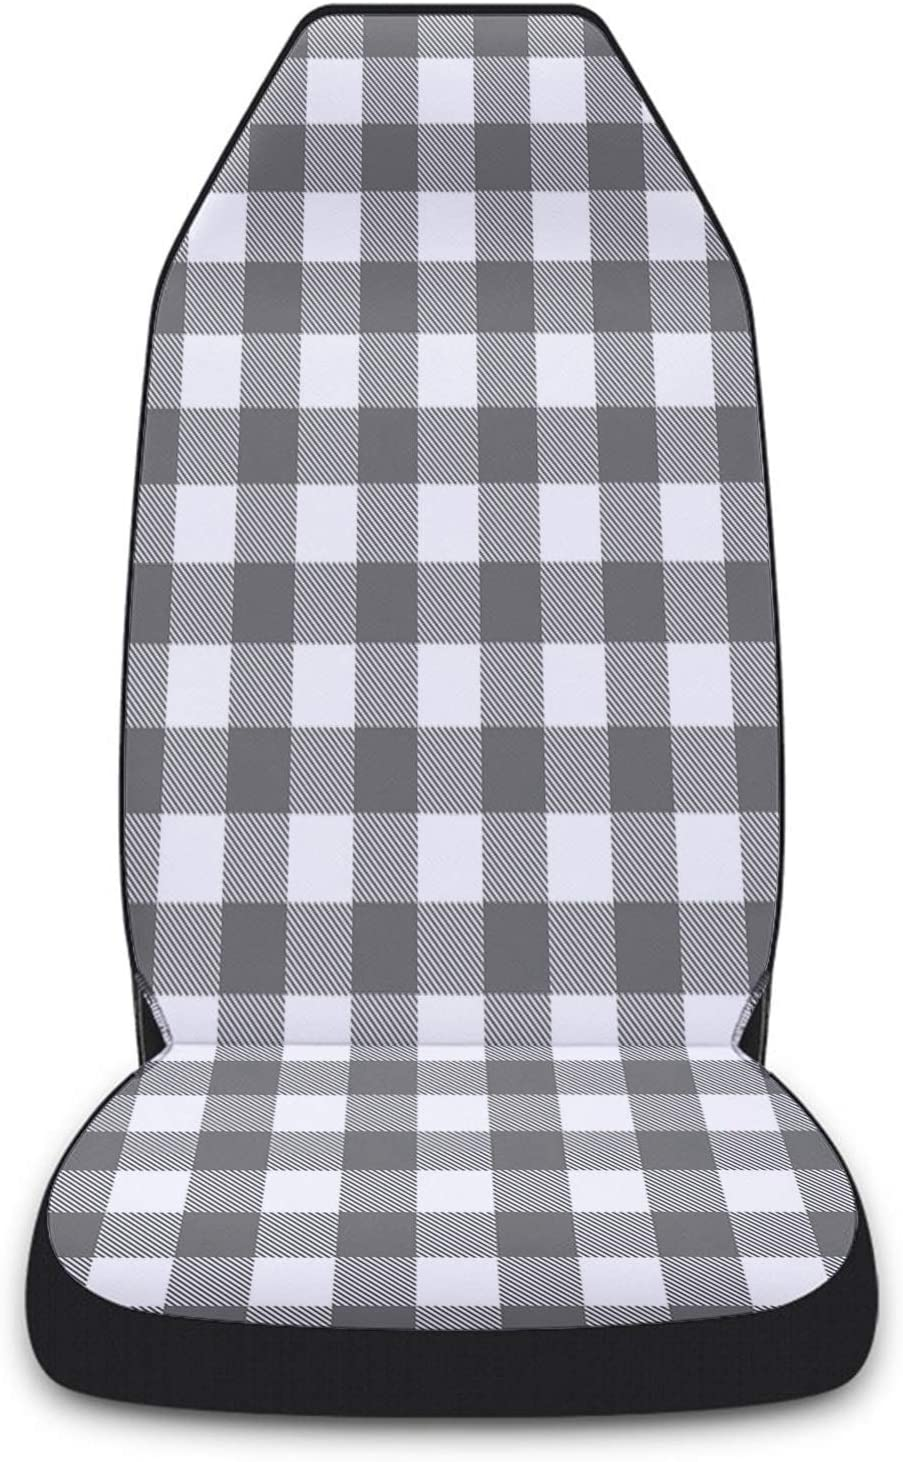 Cloud Dream Shipping included Home Car Seat Buffalo Covers Front Max 52% OFF Check Cover